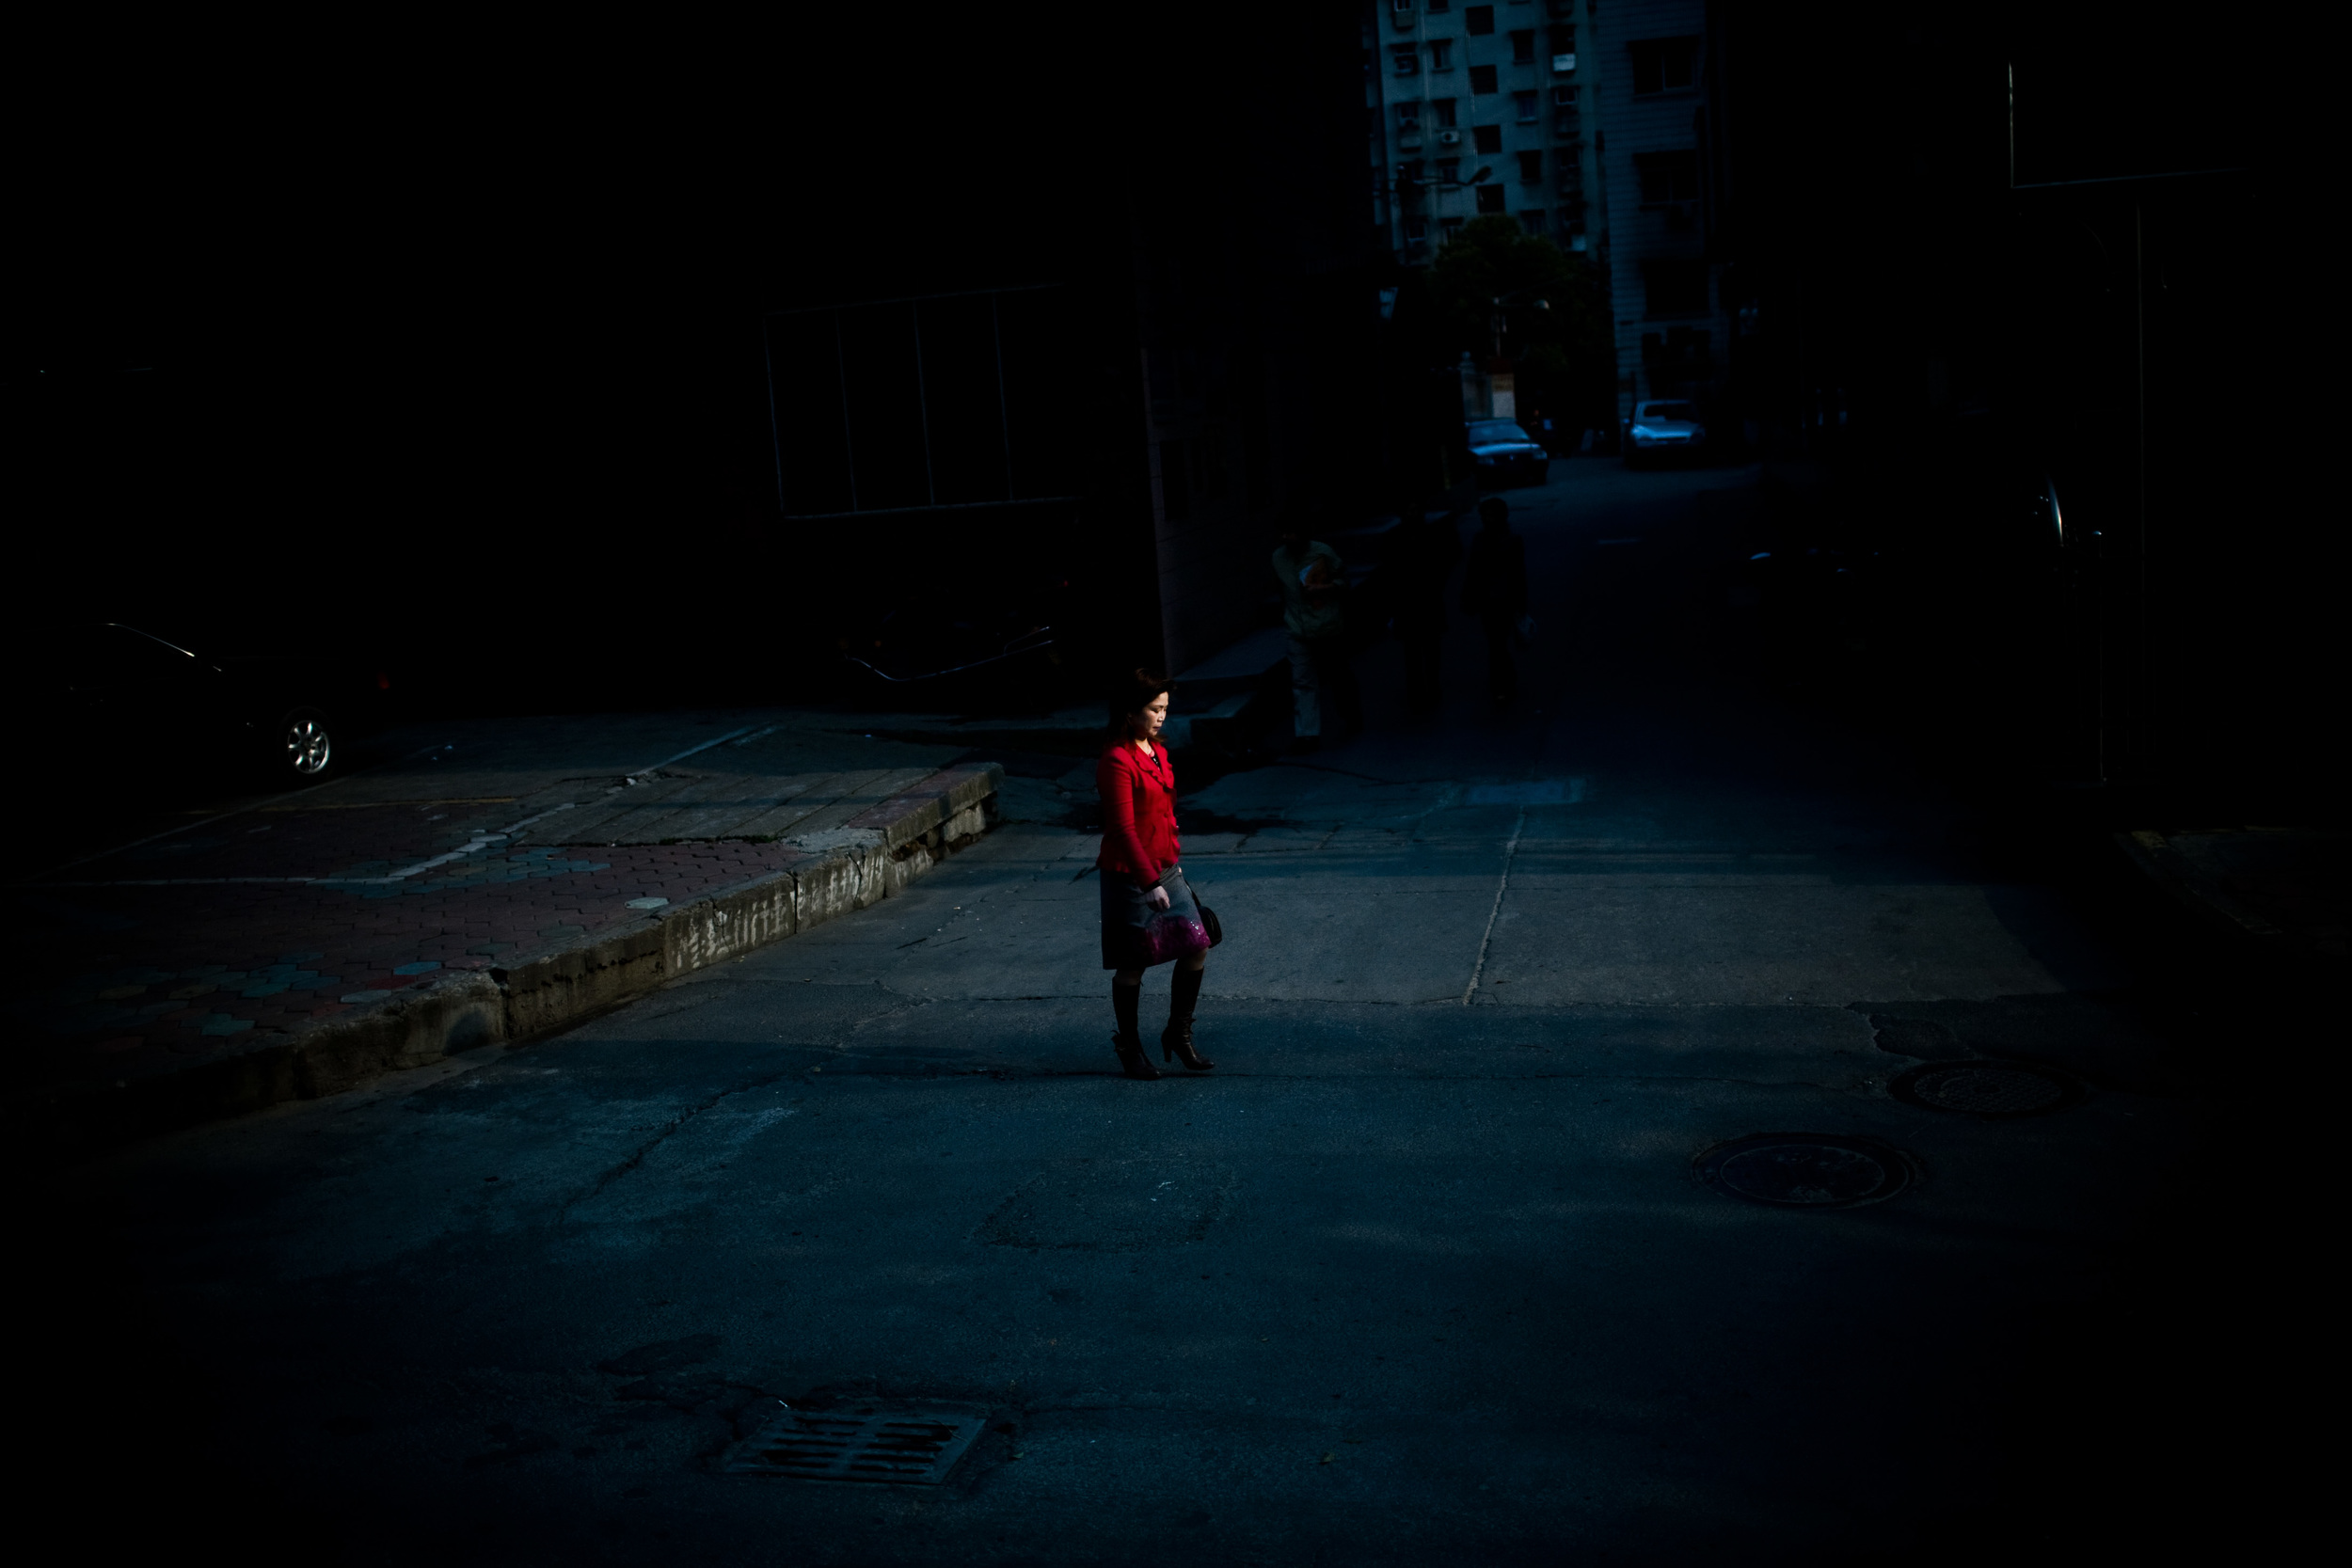 Alone in China